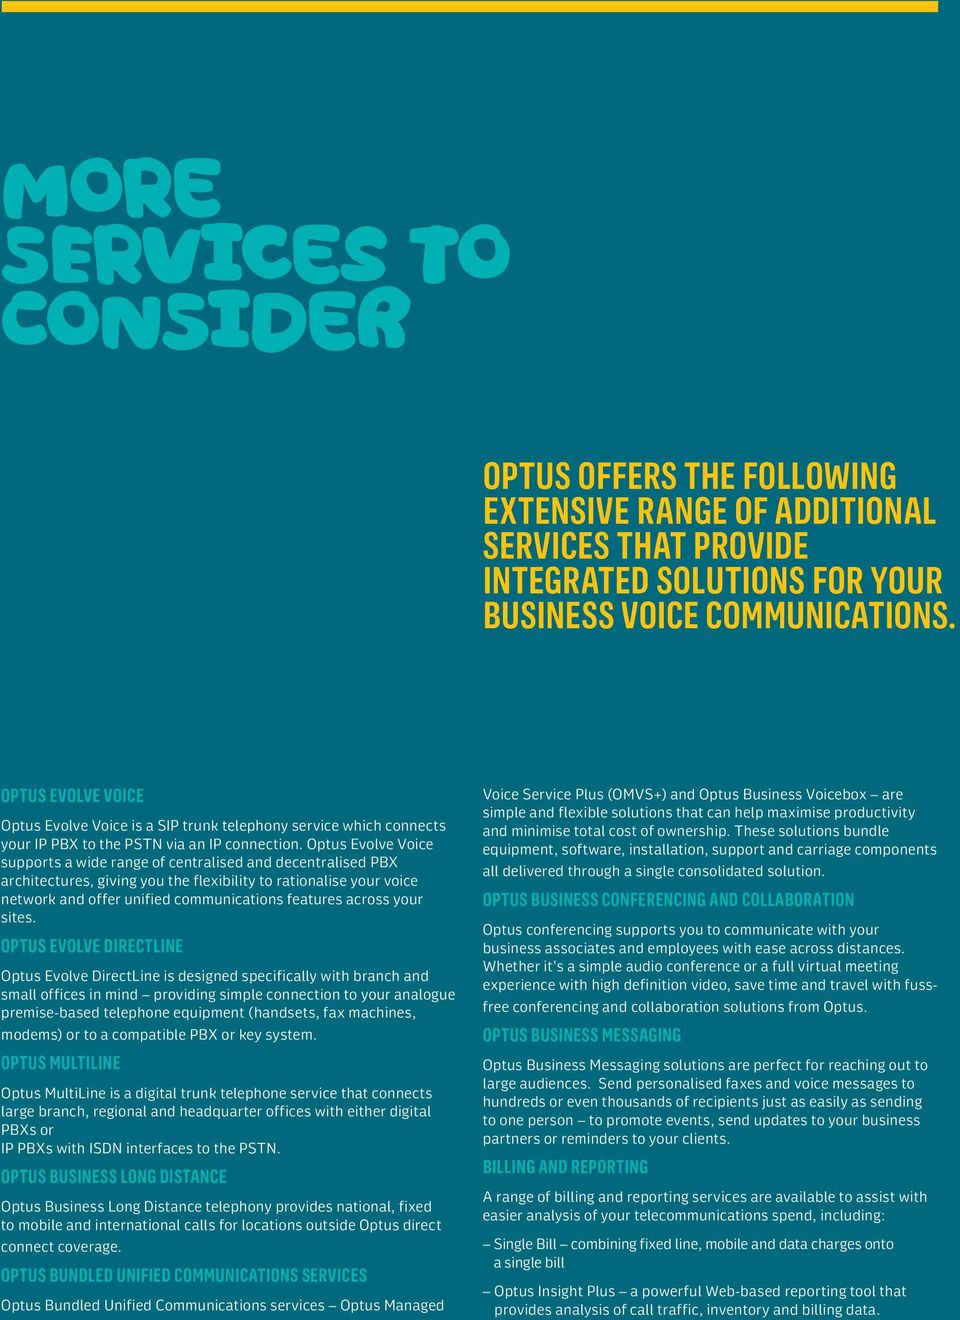 Optus Evolve Voice supports a wide range of centralised and decentralised PBX architectures, giving you the flexibility to rationalise your voice network and offer unified communications features